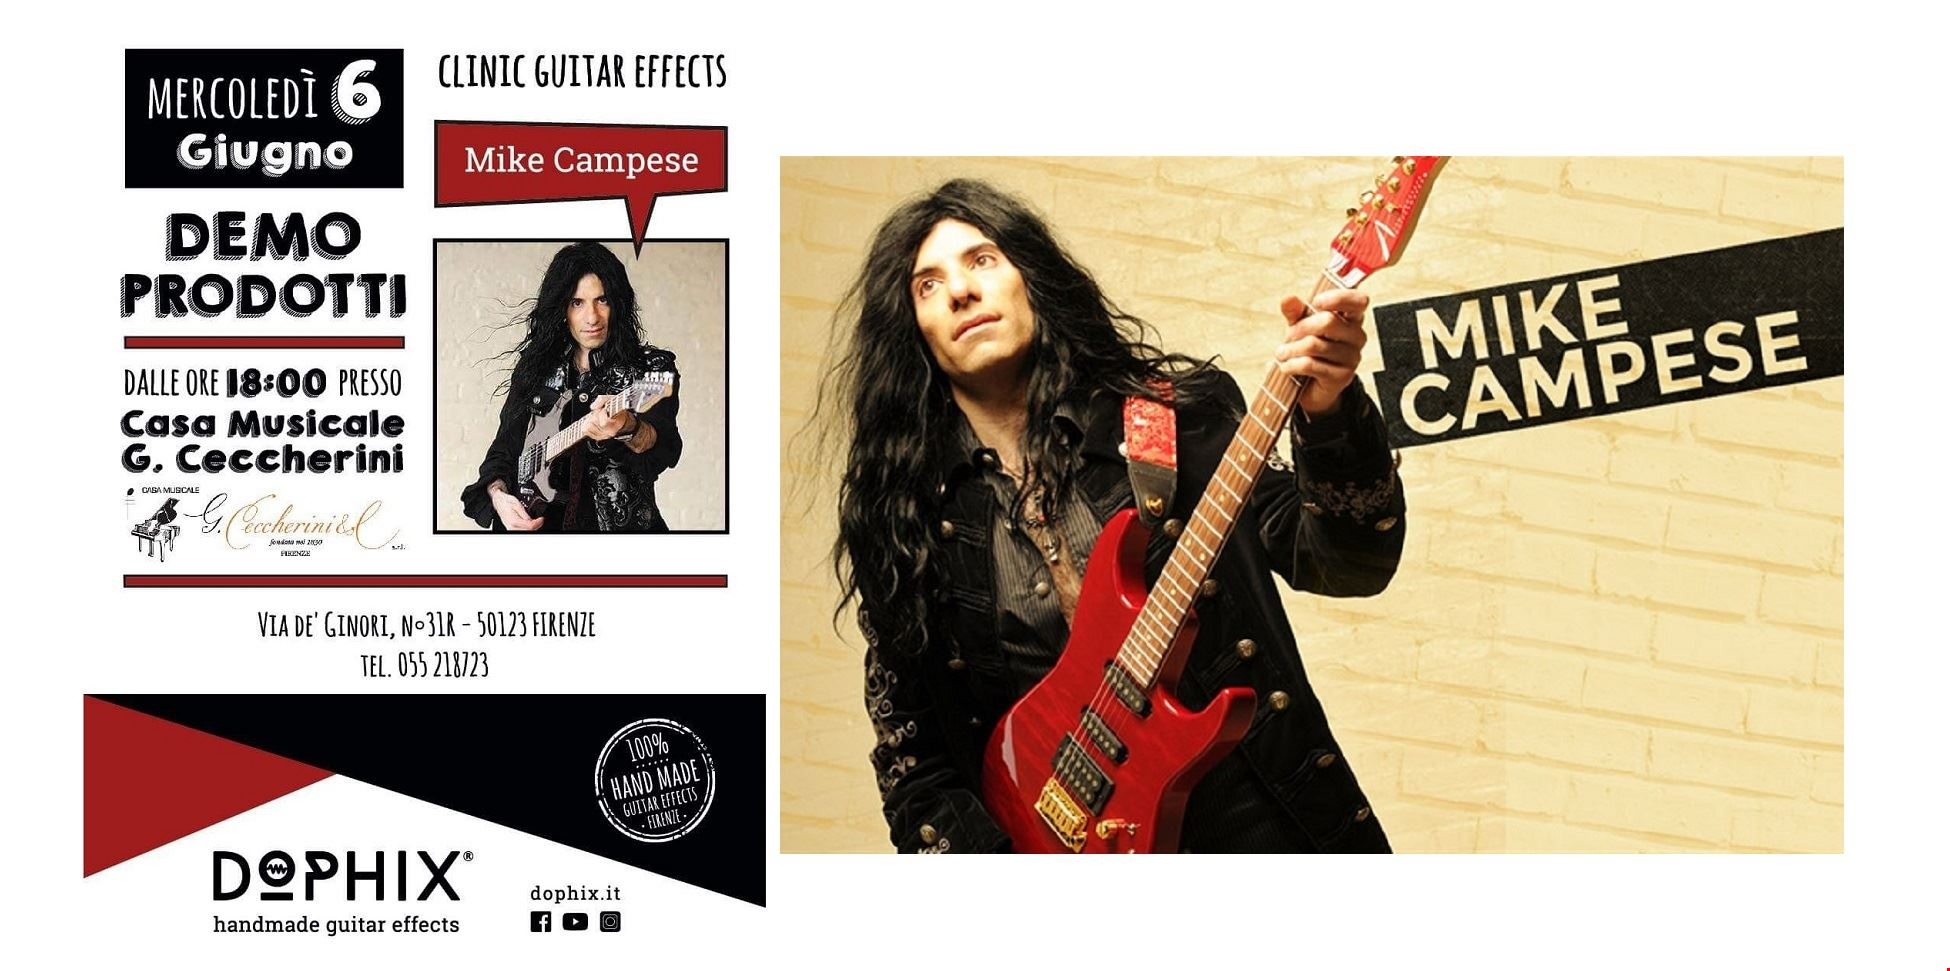 Mike Campese guitar clinic demo DOPHIX 00.jpg